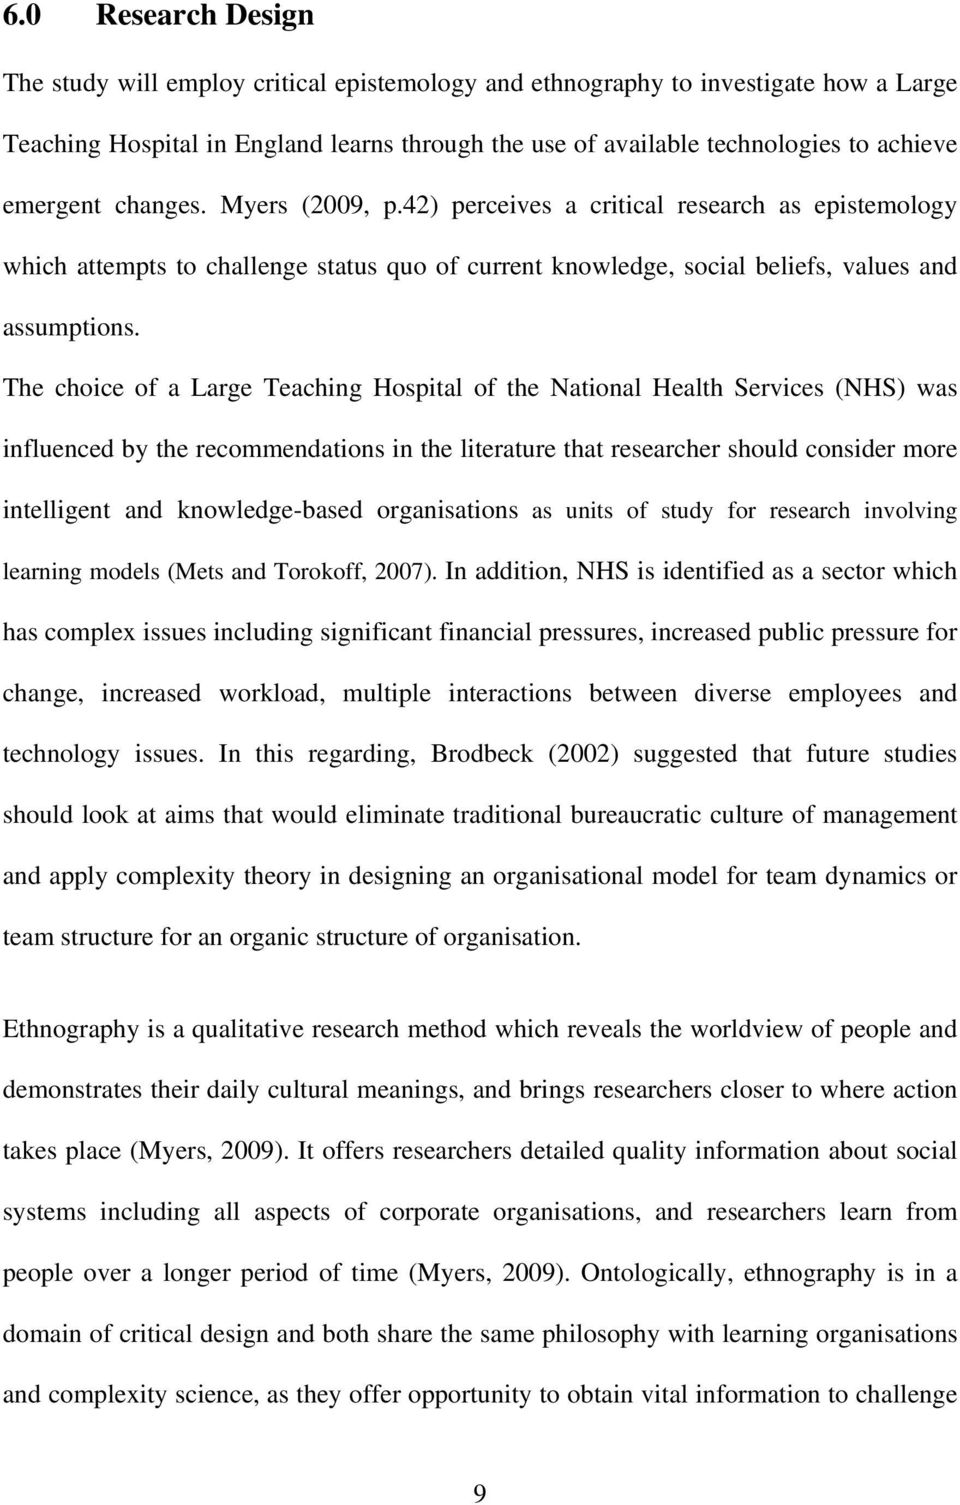 The choice of a Large Teaching Hospital of the National Health Services (NHS) was influenced by the recommendations in the literature that researcher should consider more intelligent and